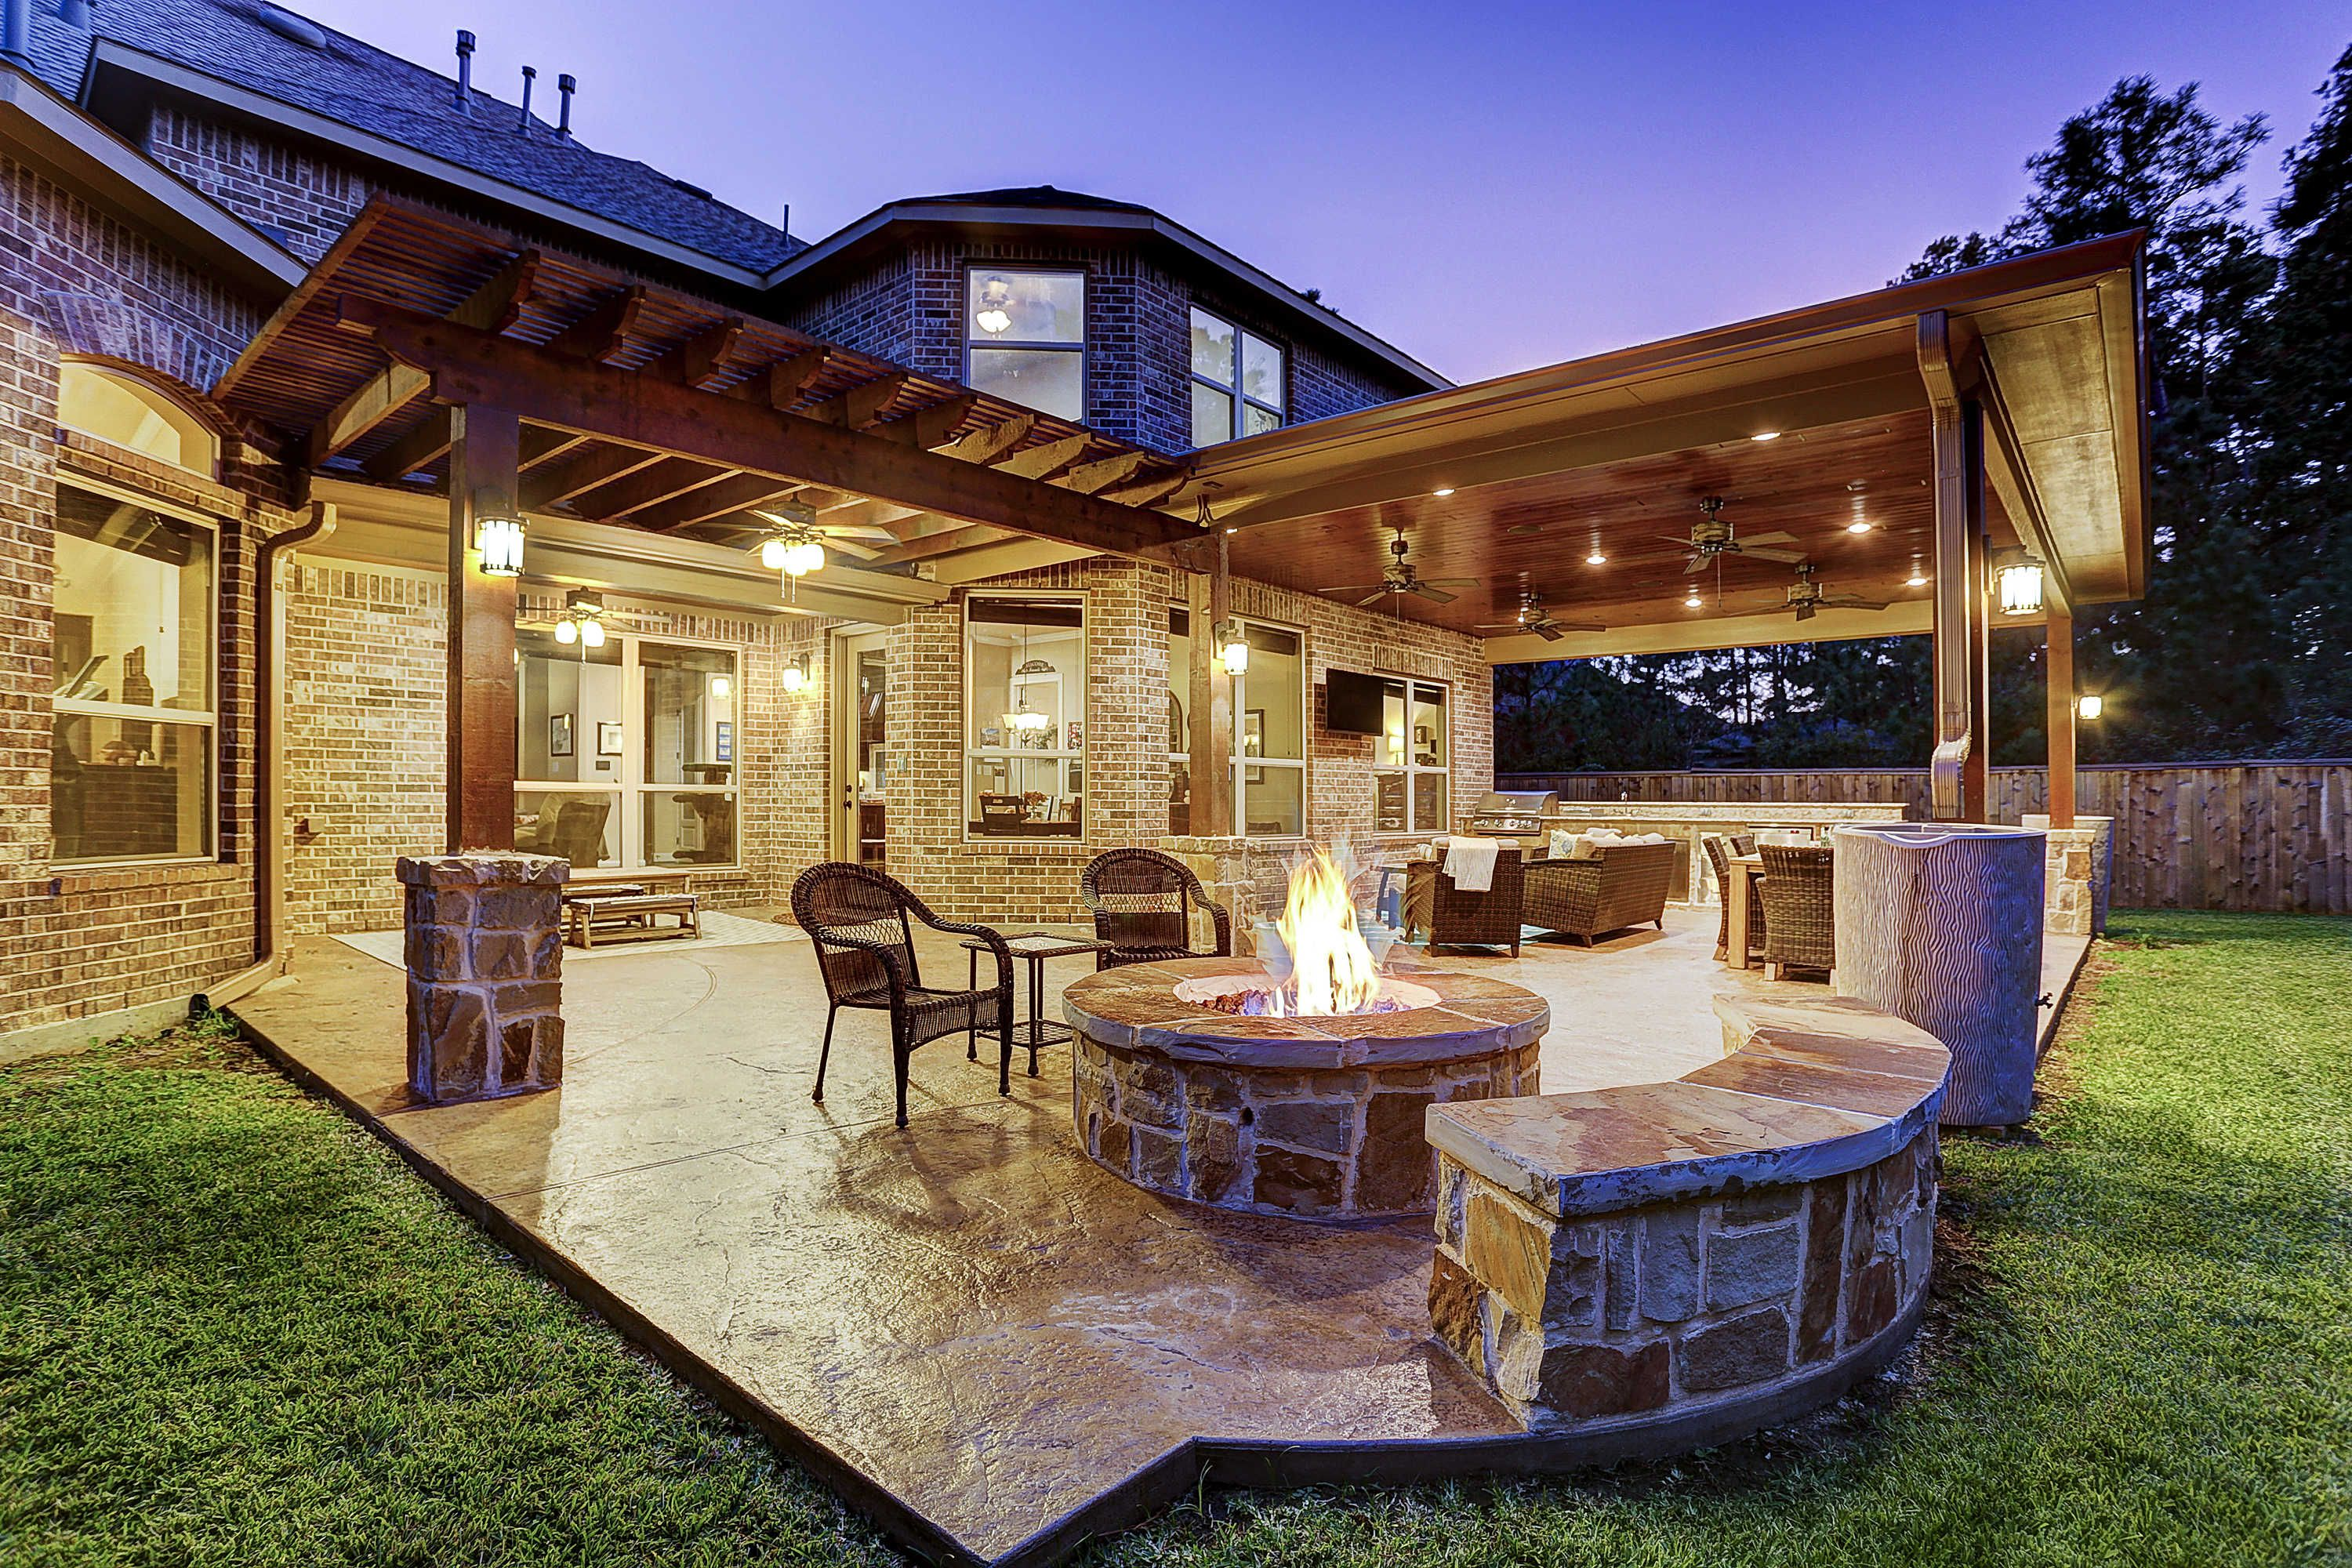 Outdoor Living Space In The Woodlands Patio Design Outdoor Living Blog Backyard Patio